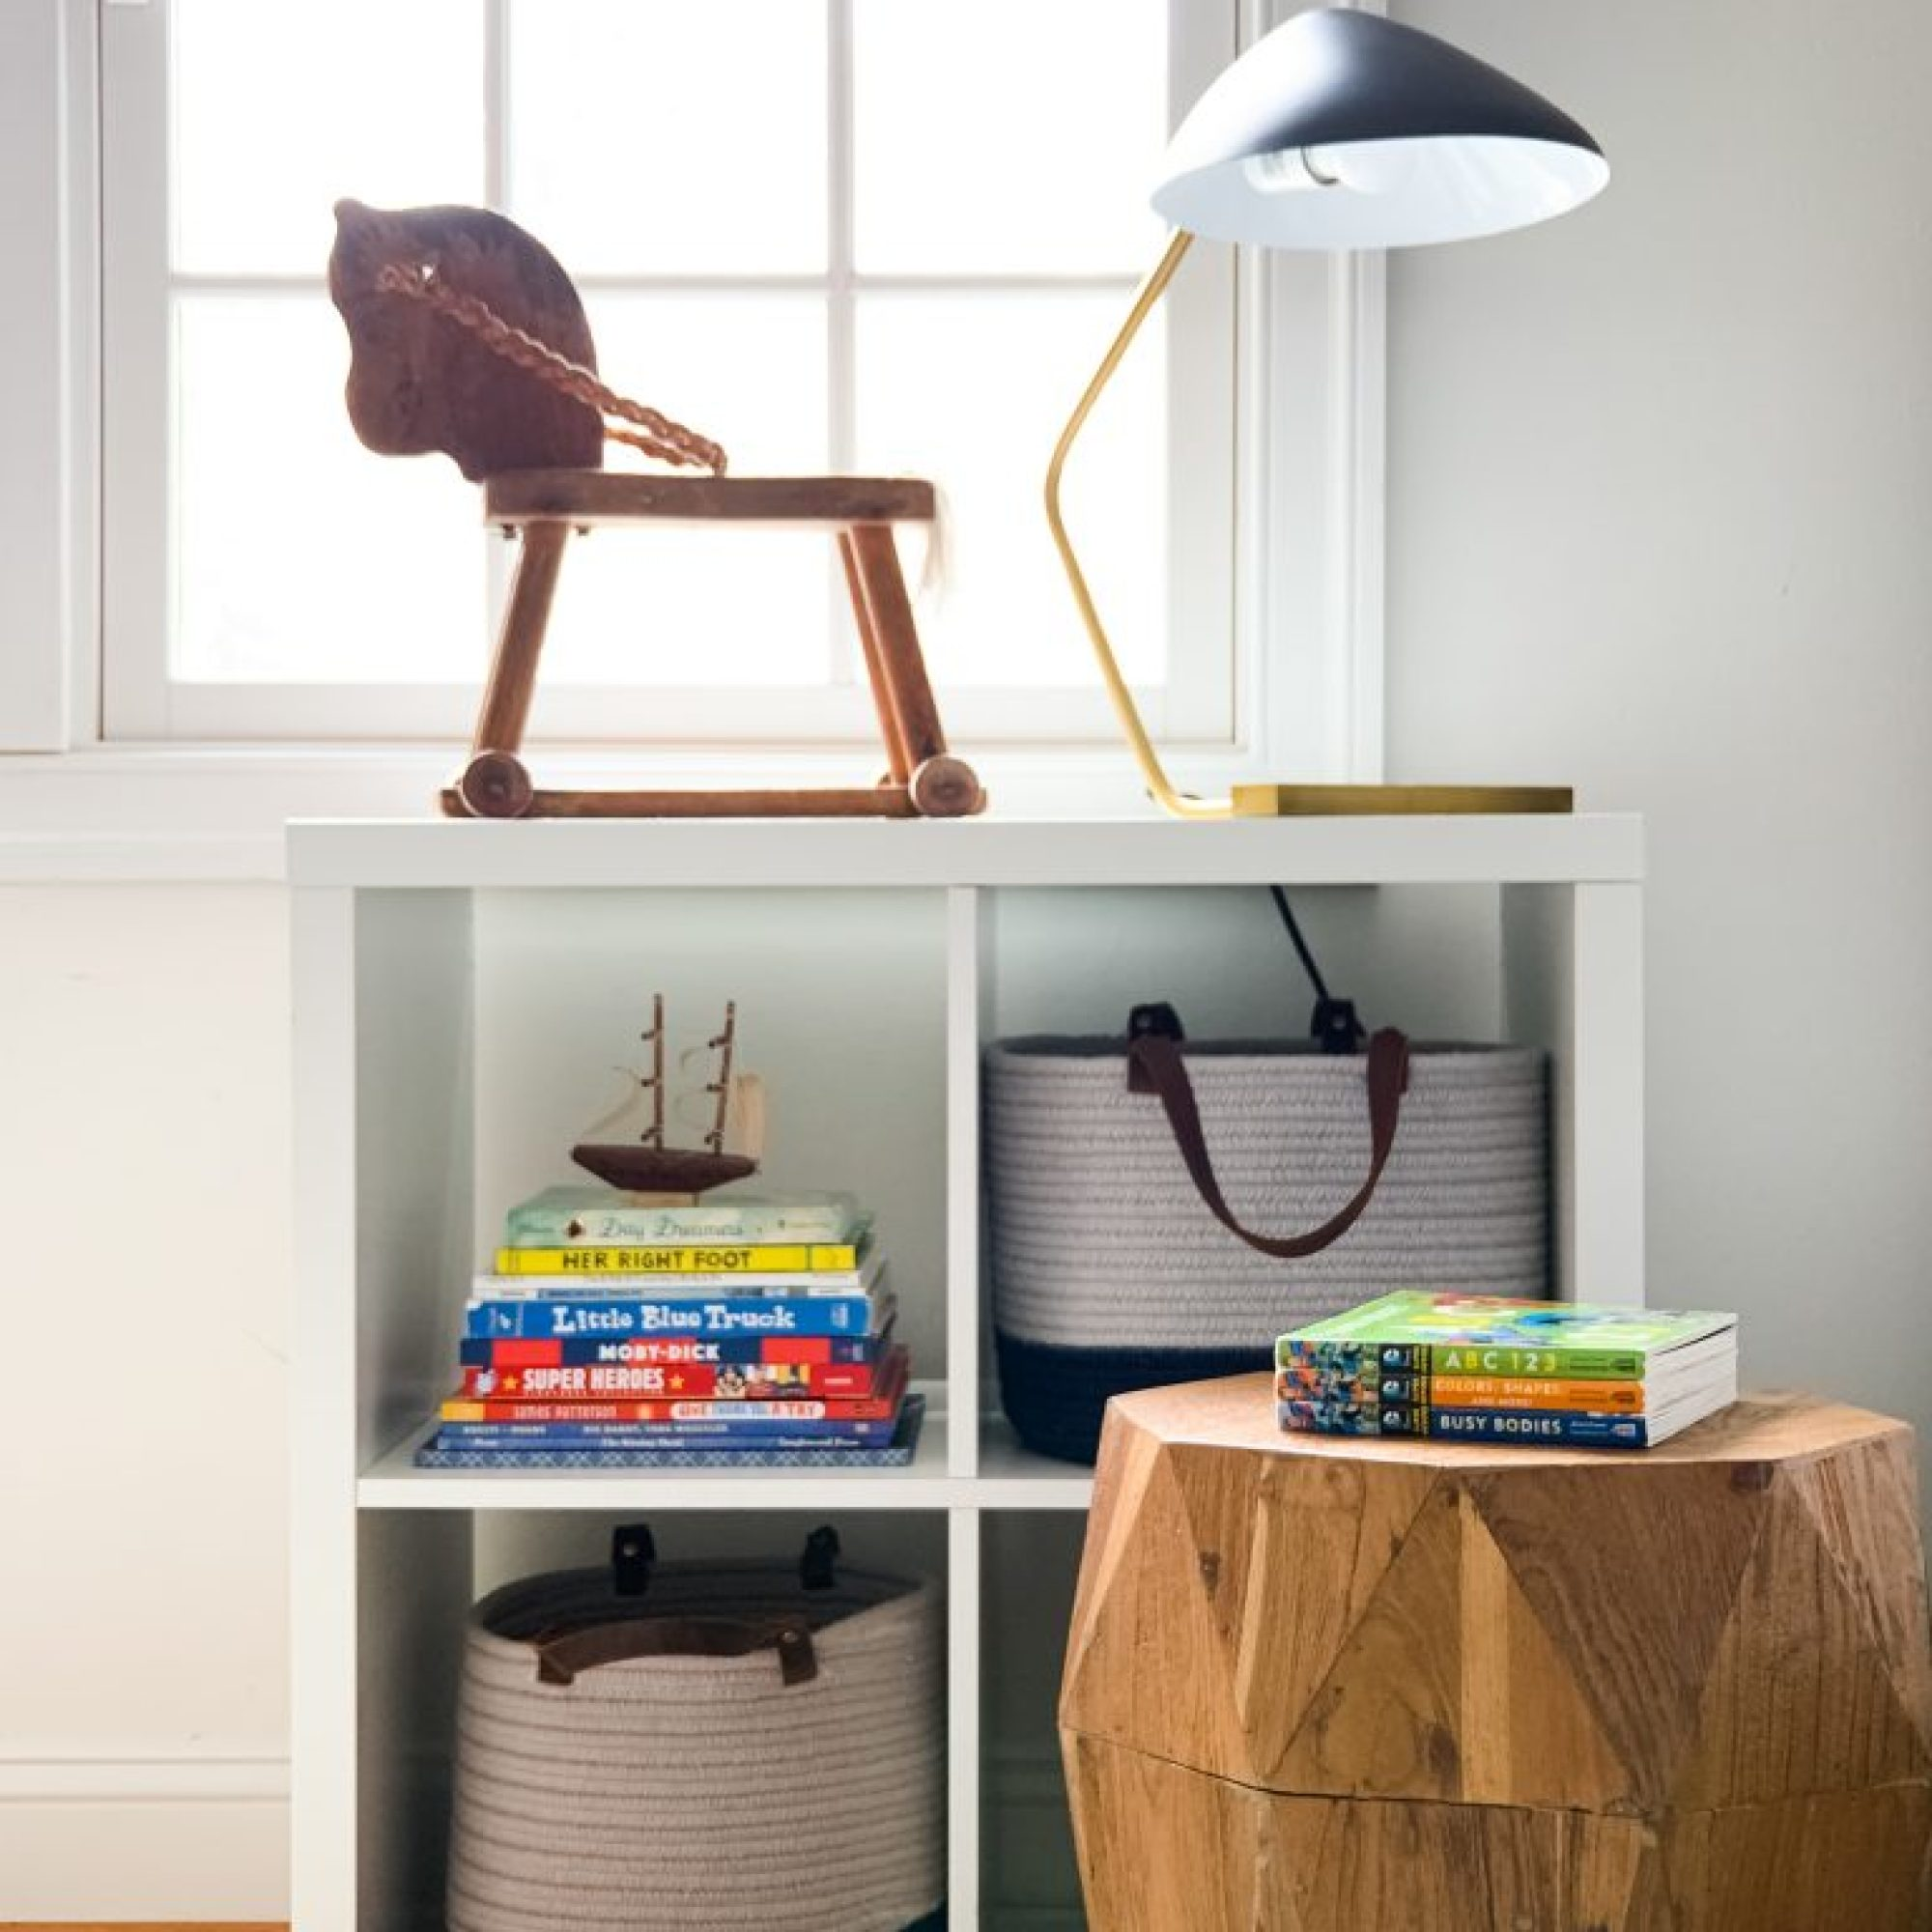 Styling Gypsy Interior Design | Classically Cool Boys Room reveal.  Shelf vignette featuring ikea kallax shelves, children's books, braided wool storage baskets, vintage rocking horse, midcentury lamp and geometric wood stool  #boysroom #boysroomideas #boysroominspiration #starwarsbedroom #boysroomdecor #kidsroom #shelfie